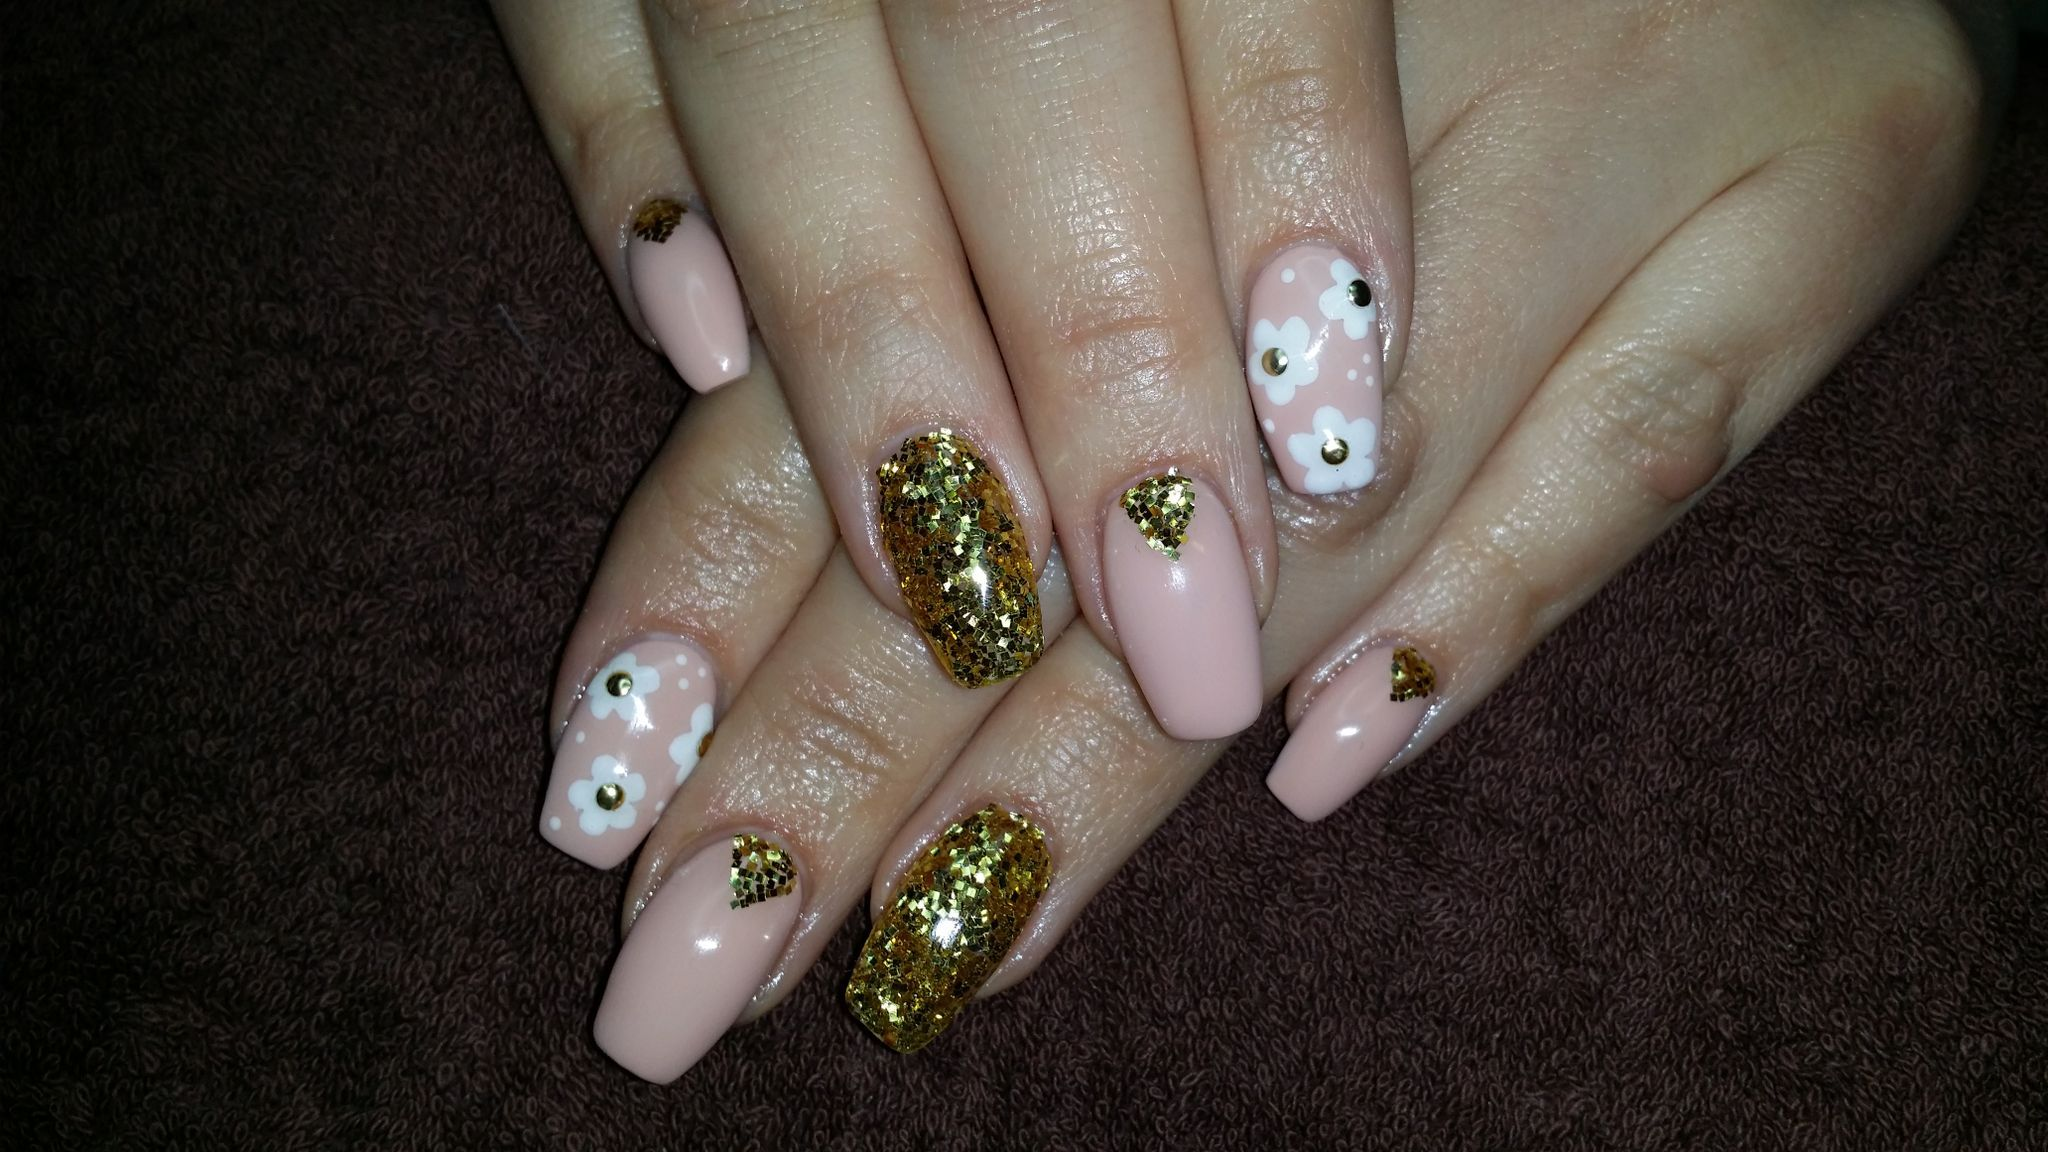 Nails by NailSpa.Arnold in 70736 Fellbach from www.nageldesign-galerie.de